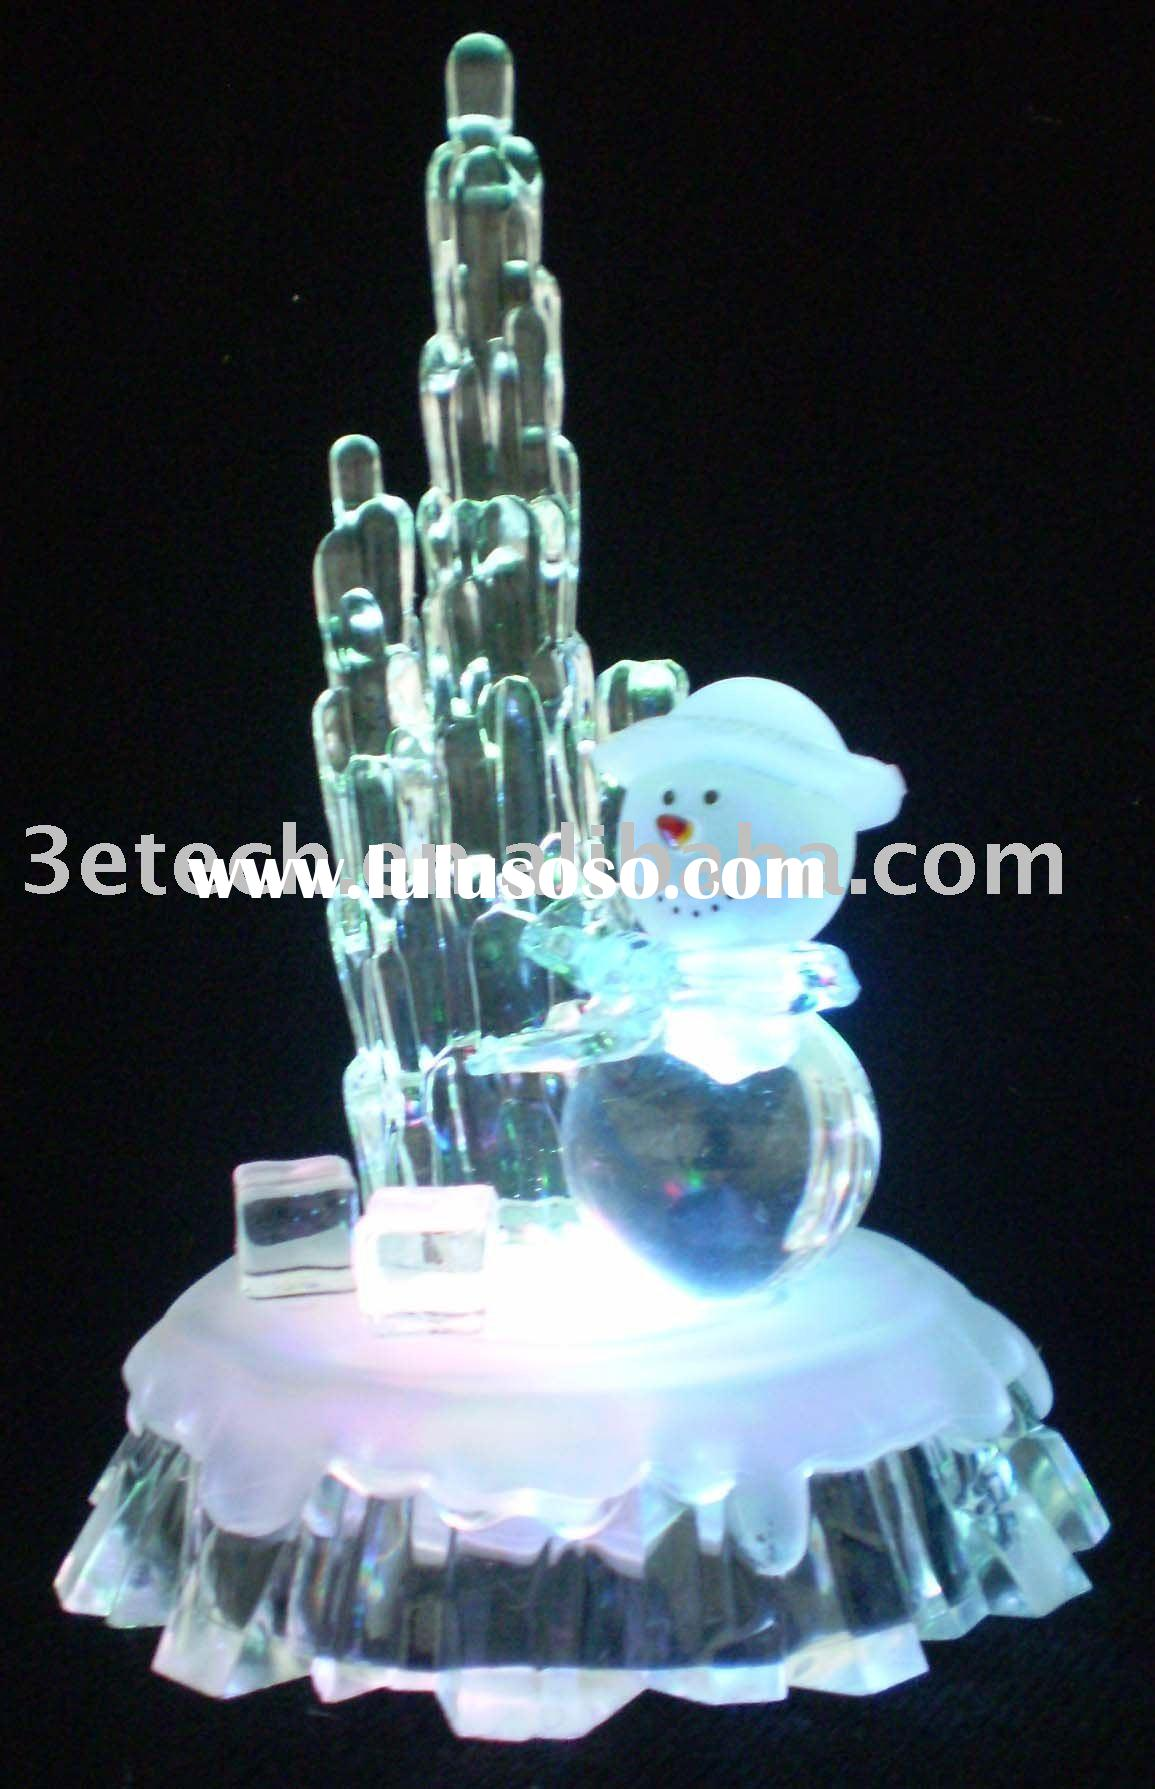 3pcs AG13 Battery Operate 13cm Icicle & Bear table light Christmas gift Decoration  Slow RGB lig